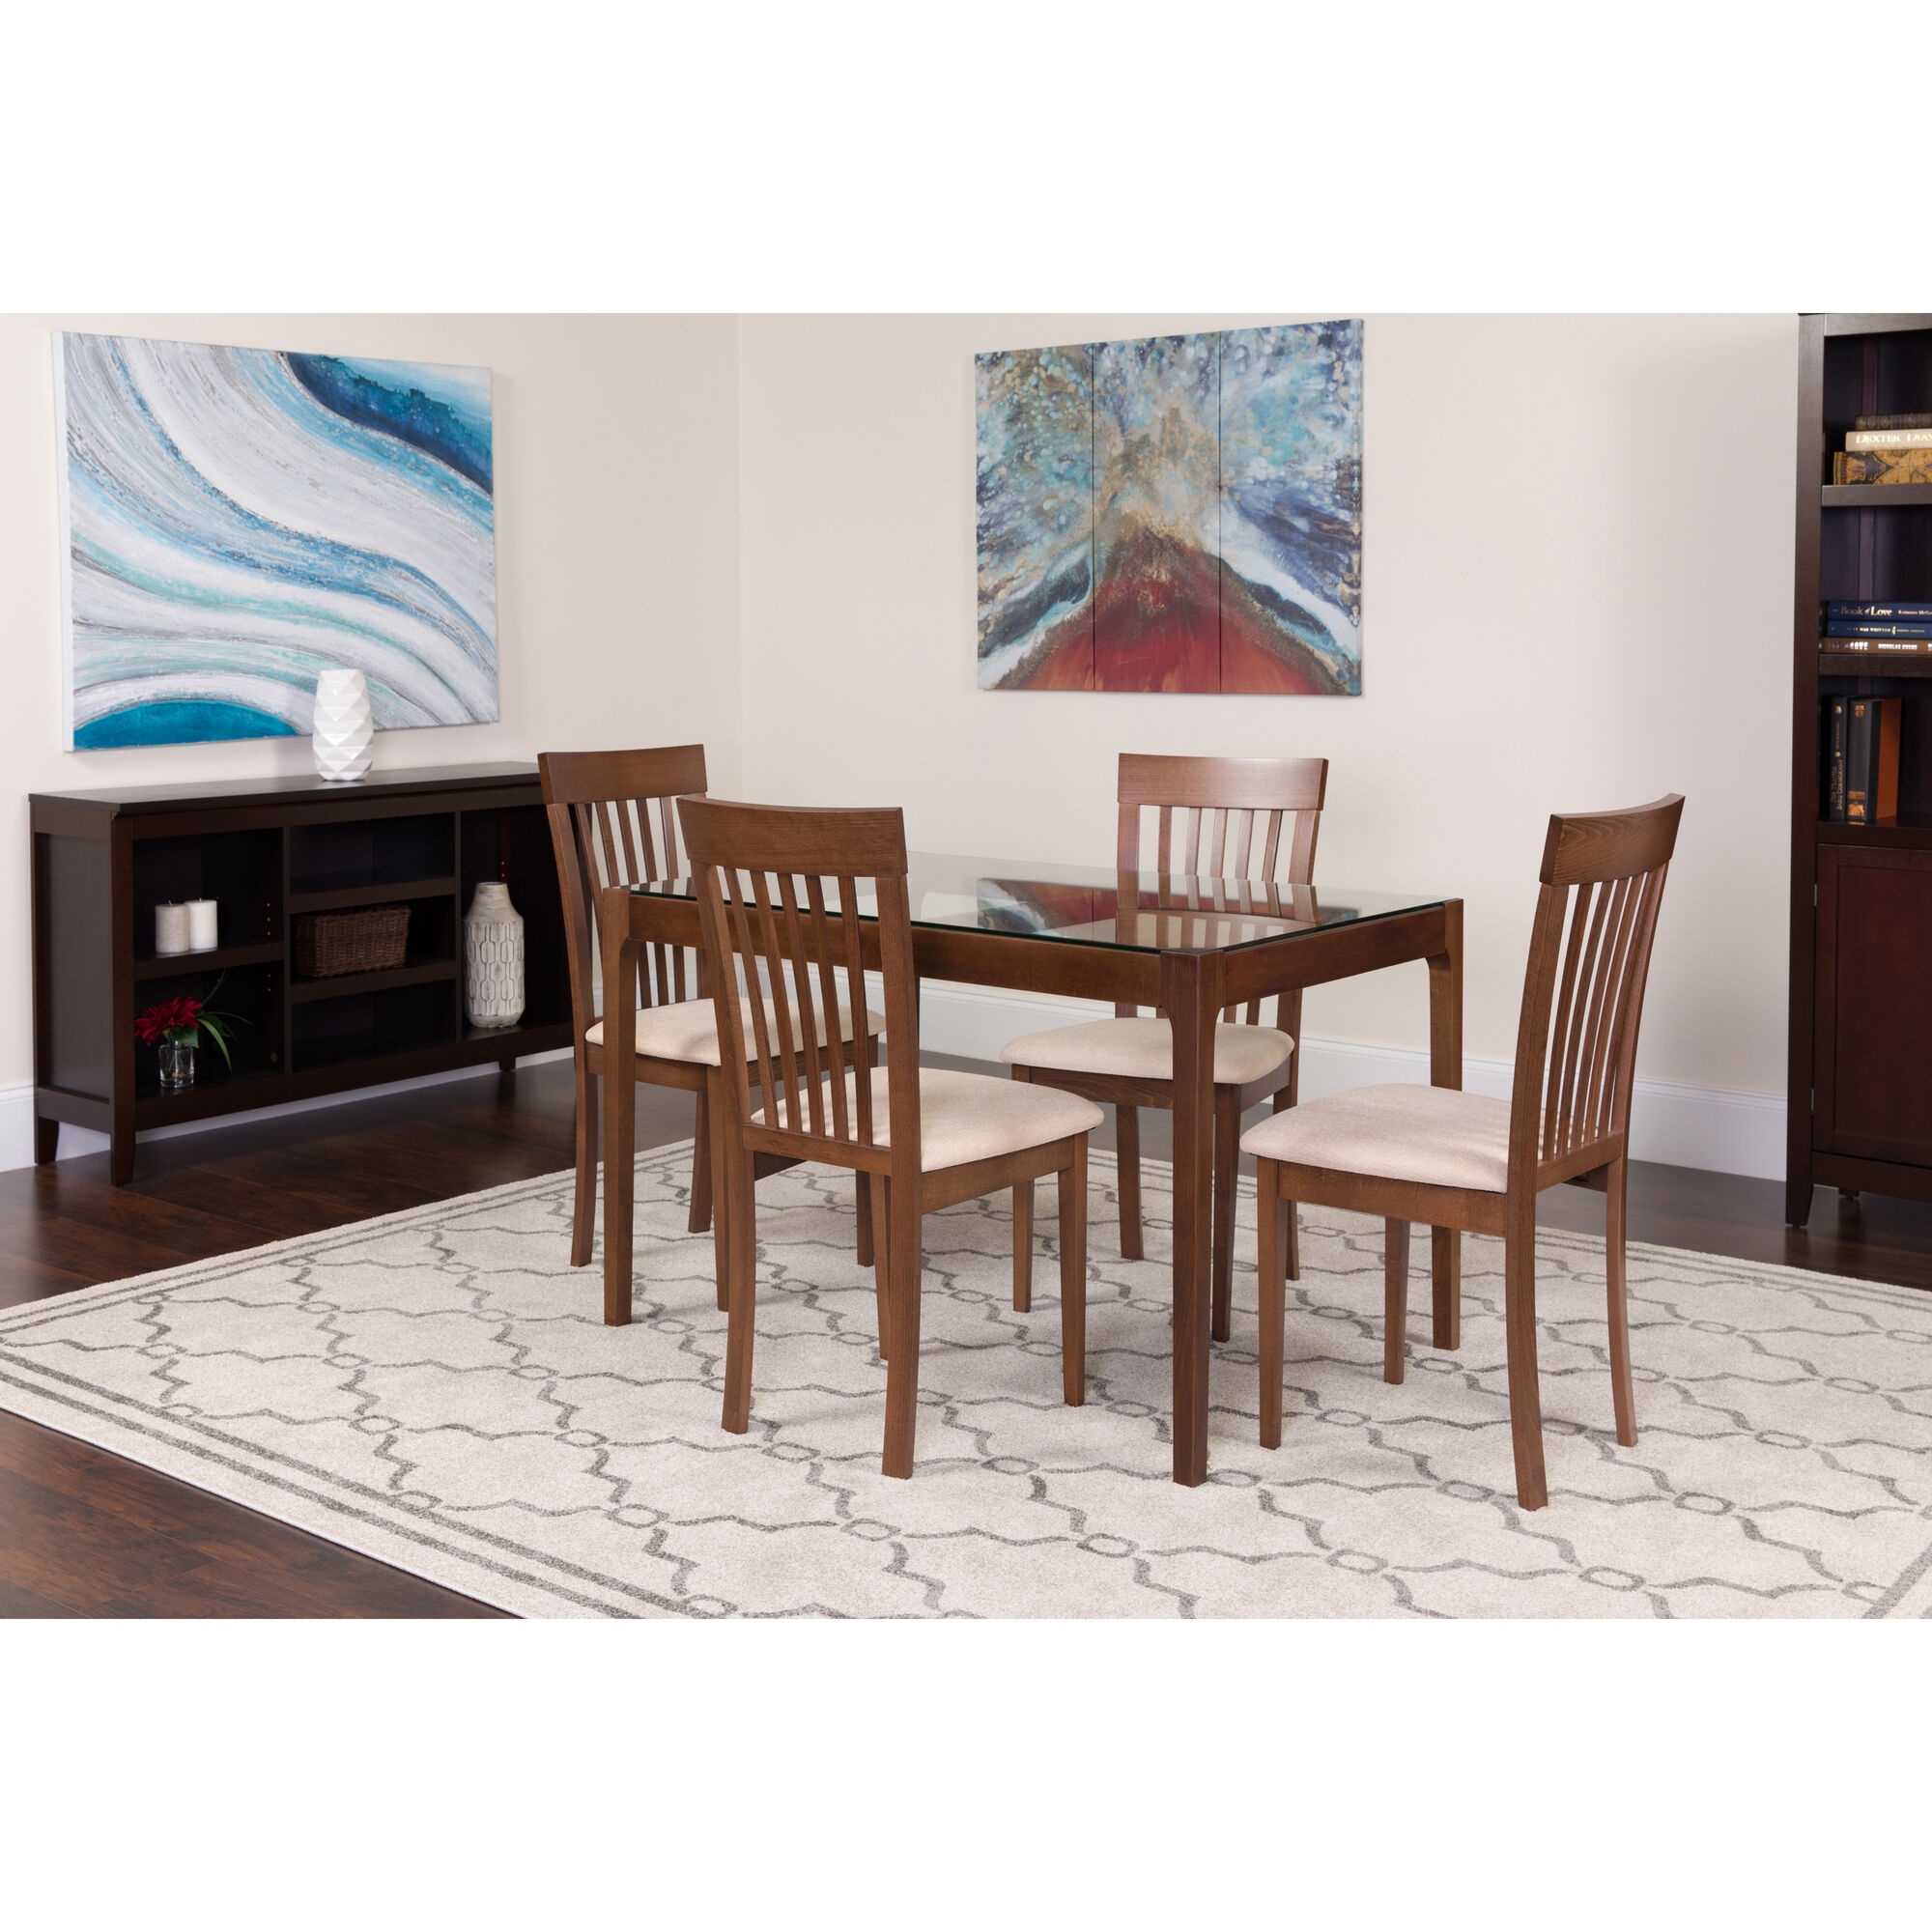 Images our clayton 5 piece walnut wood dining table